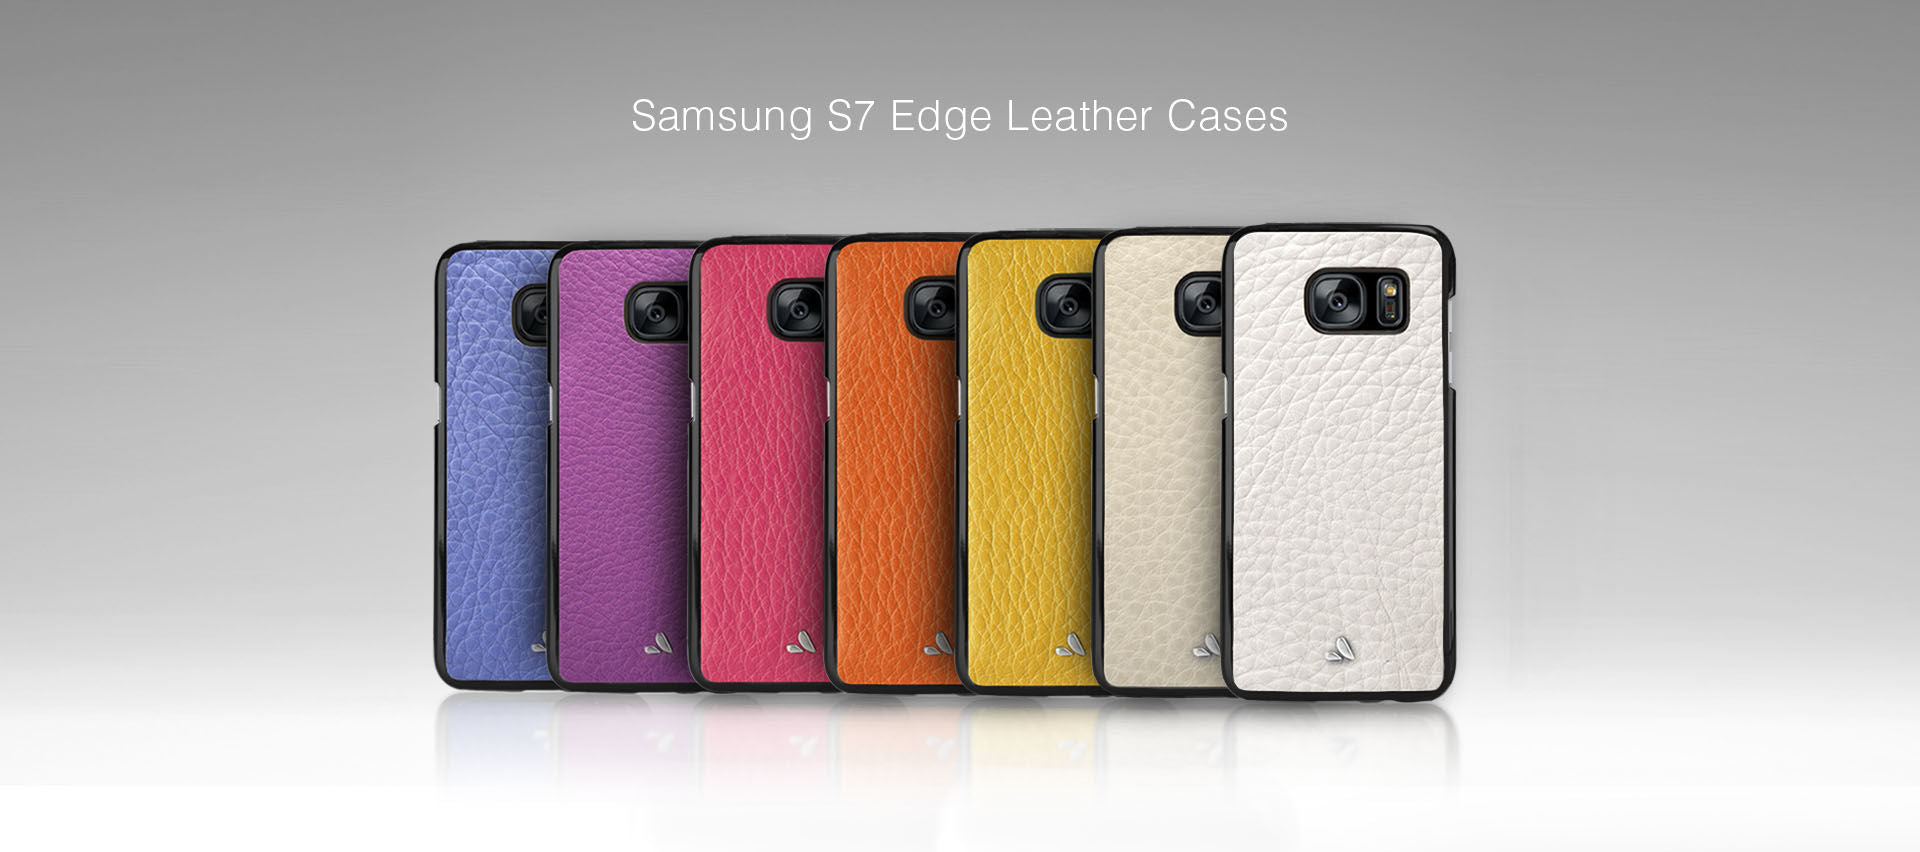 Vaja Samsung S7 Edge Leather Cases